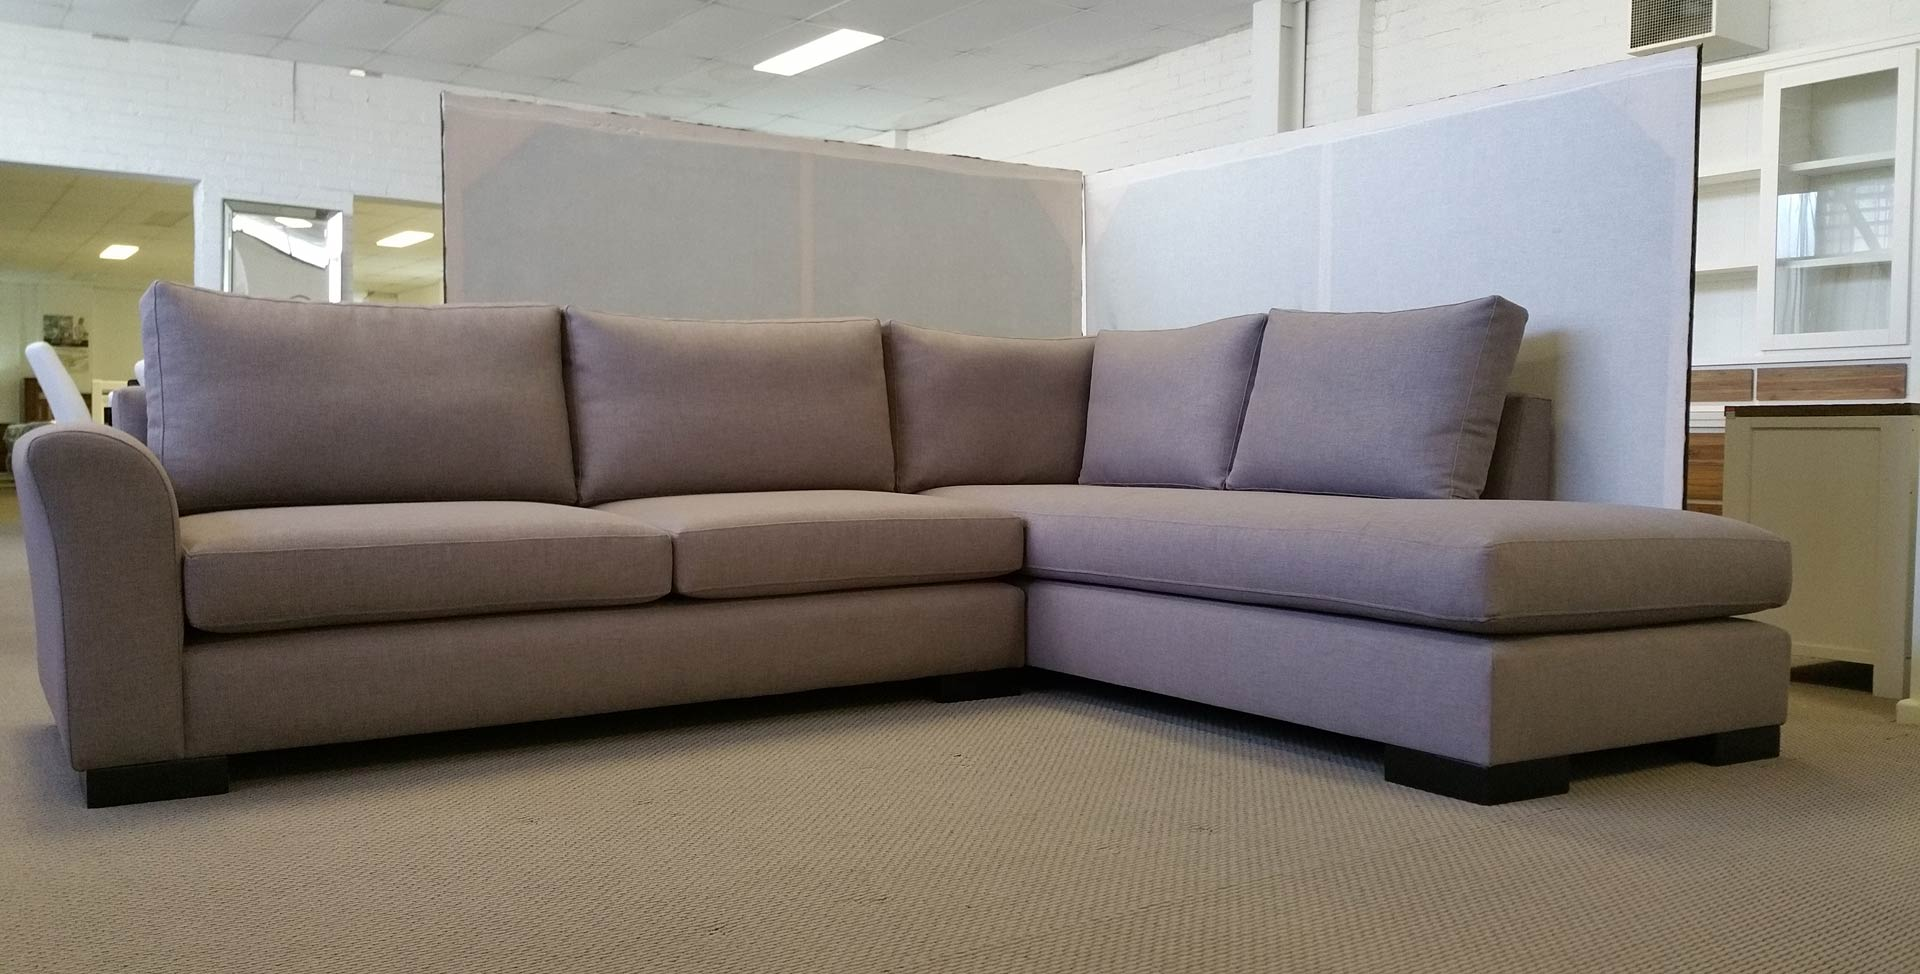 Euro sofa direct pty ltd for Couch 700 euro